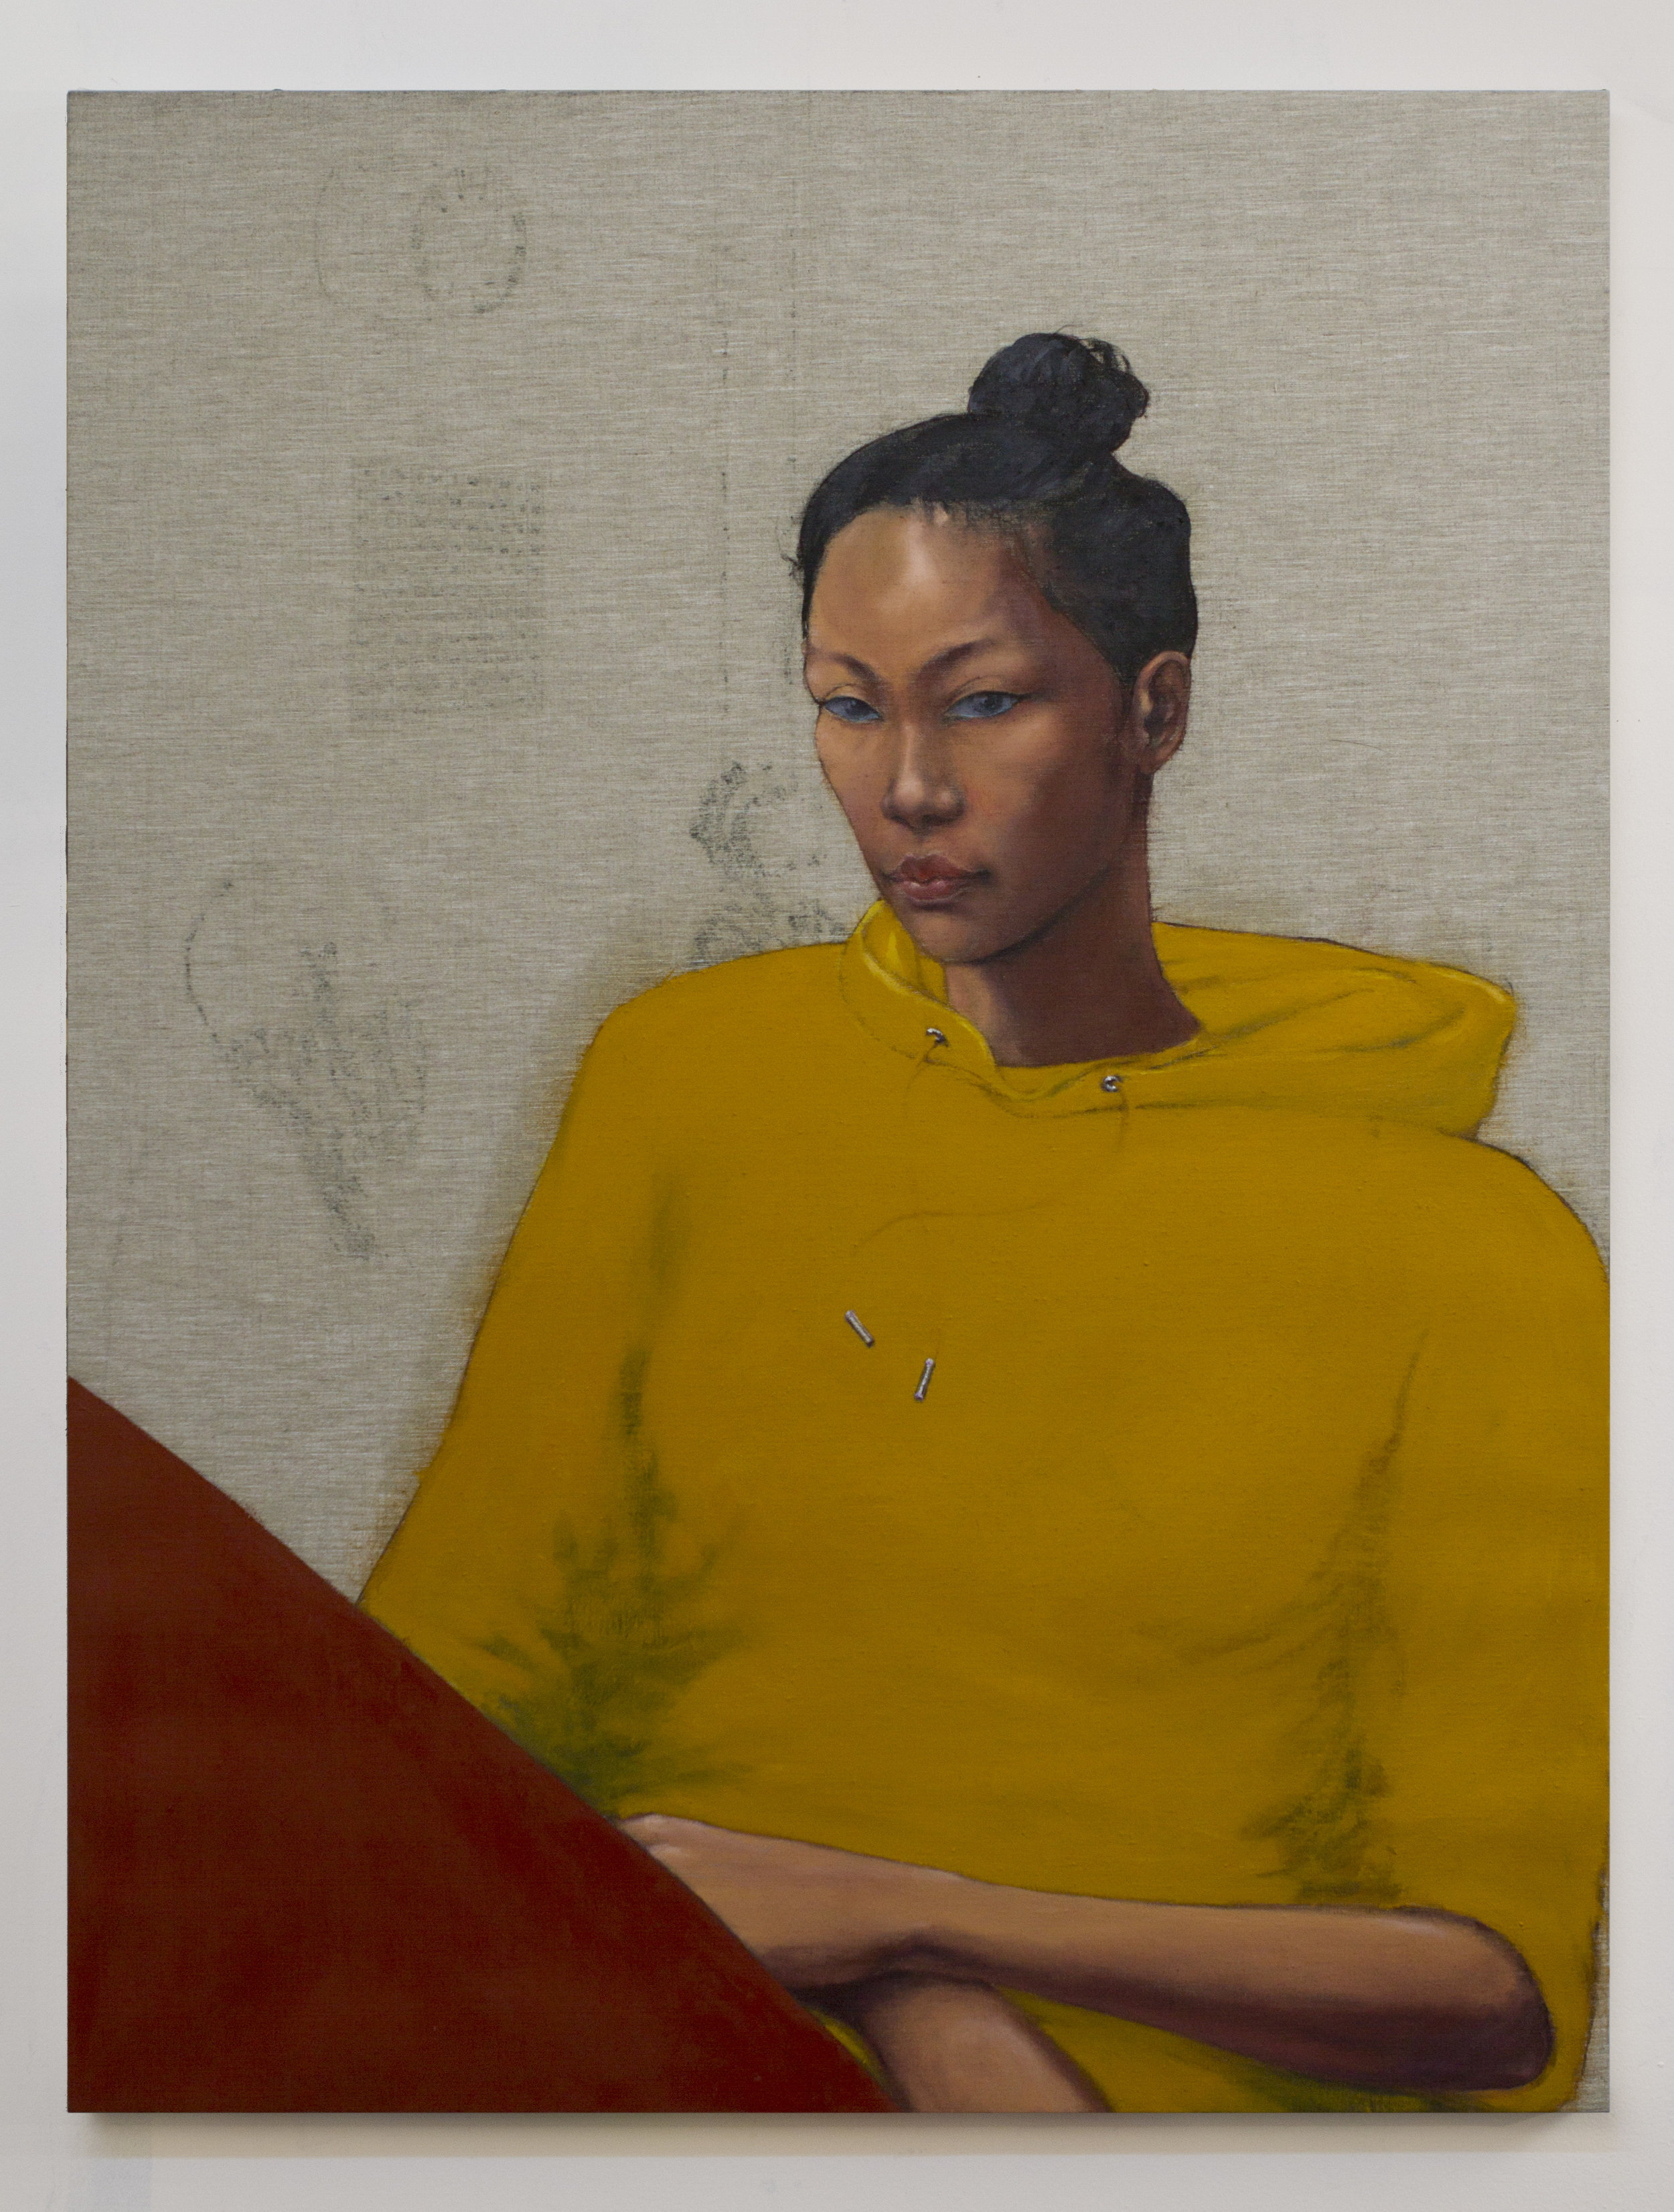 Study for Romana 2018 oil on linen 38 x 29 inches